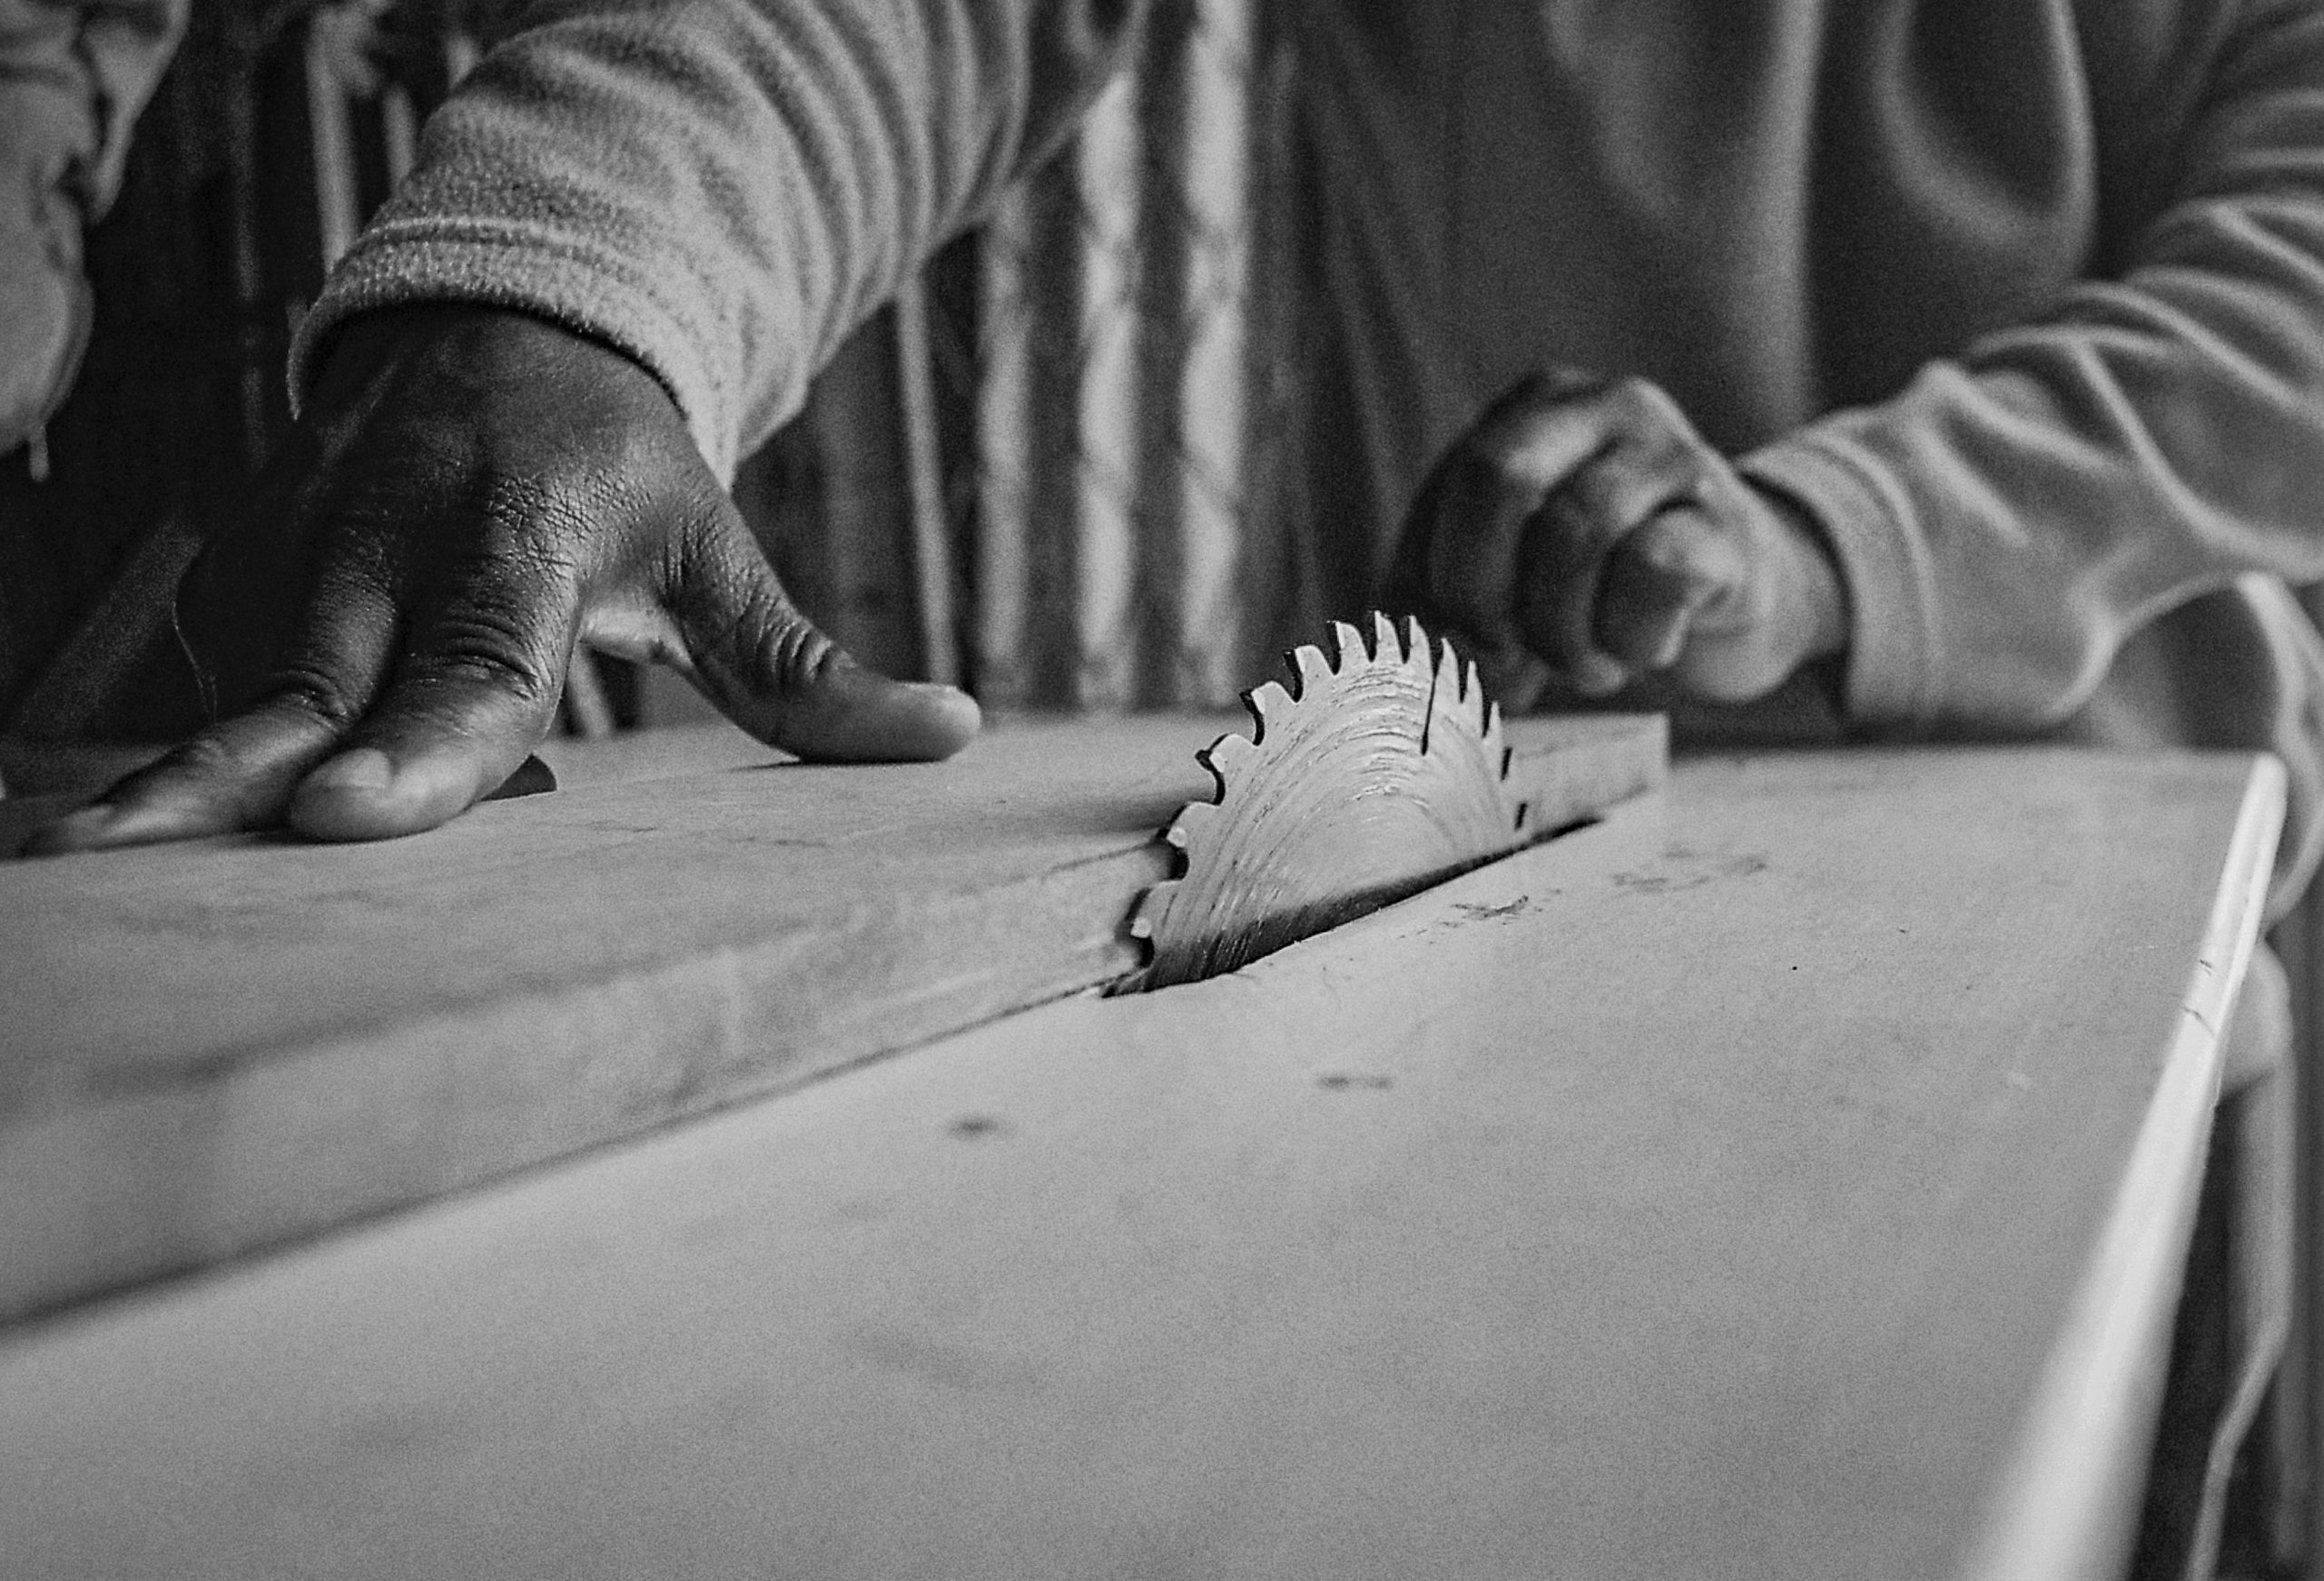 Andrew at his carpentry workshop Suggested Credit Quentin Pichon Scalabrini